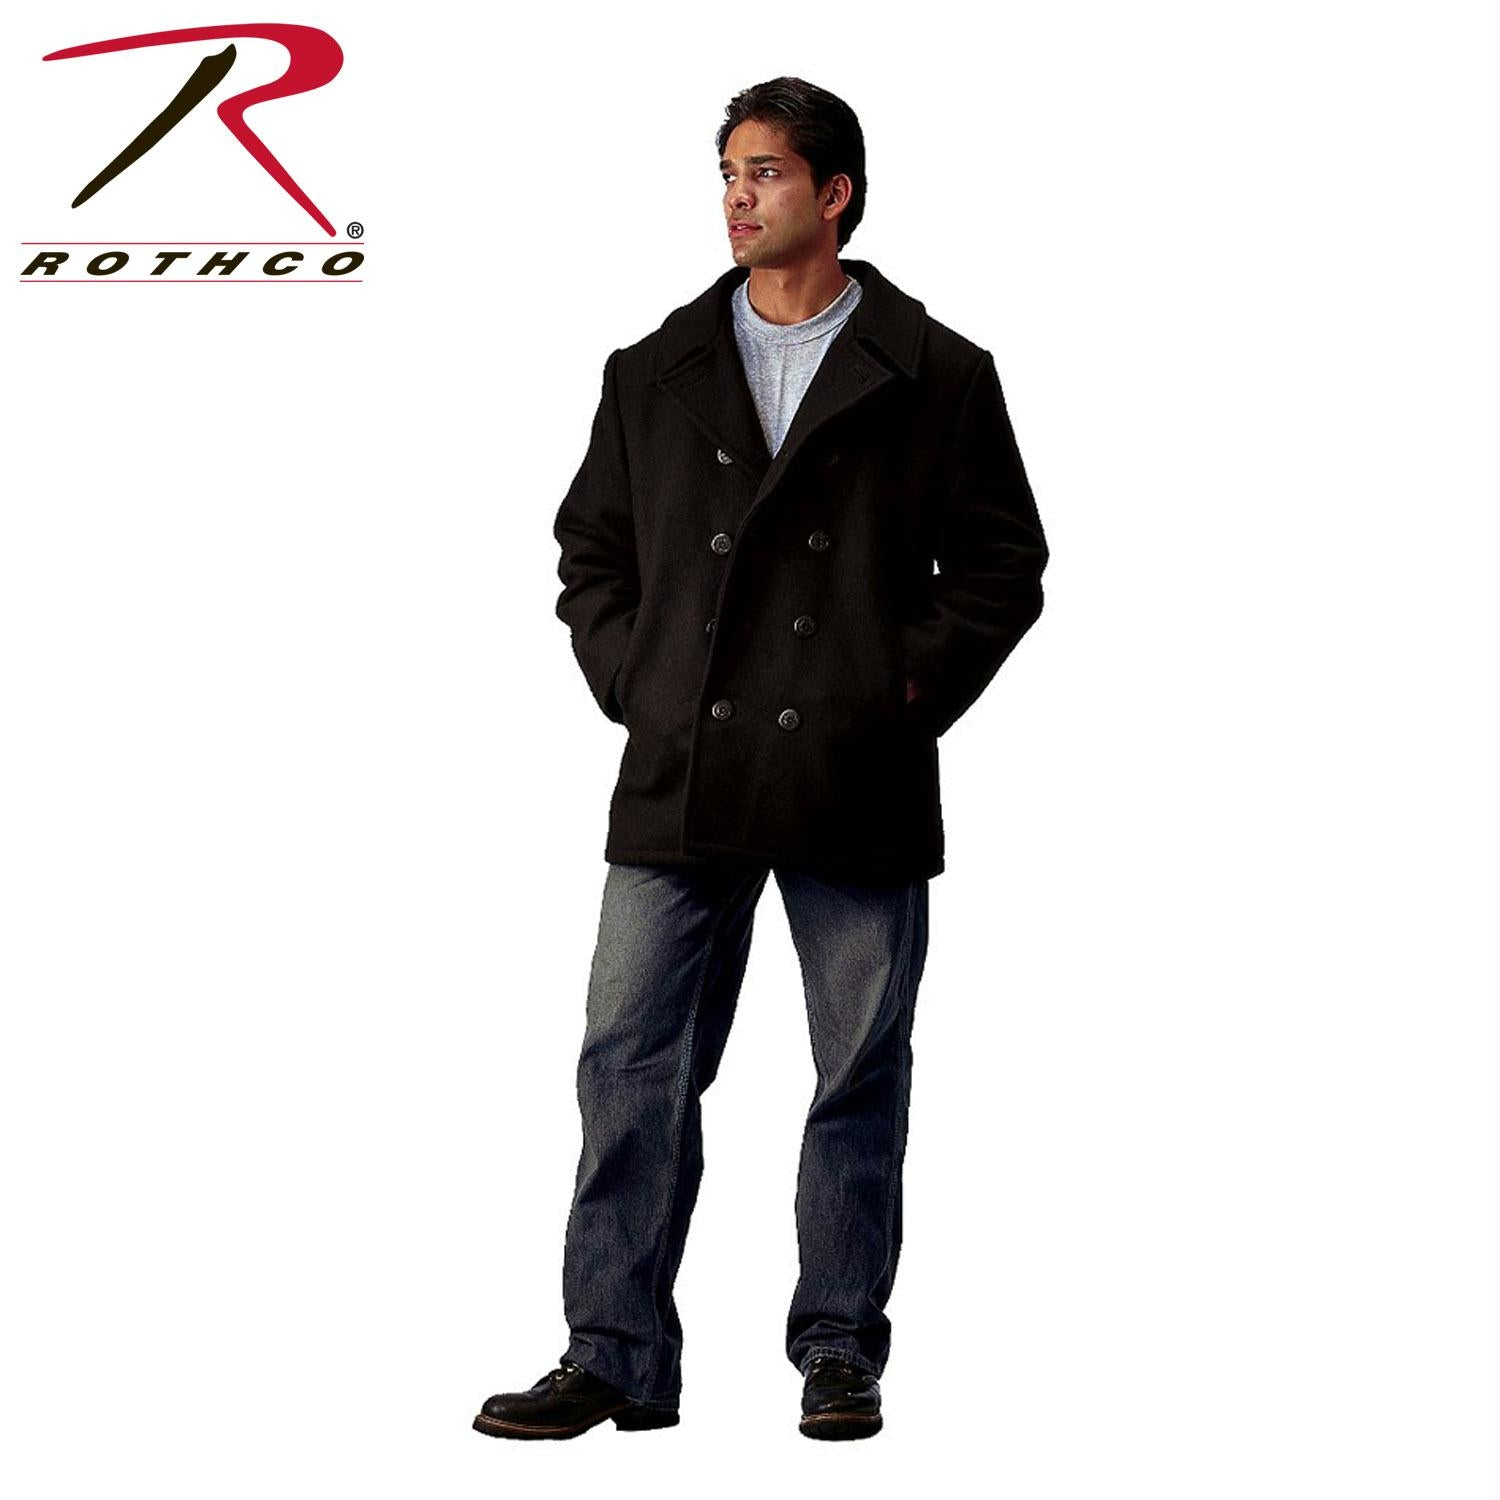 Rothco US Navy Type Pea Coat - Black / XS